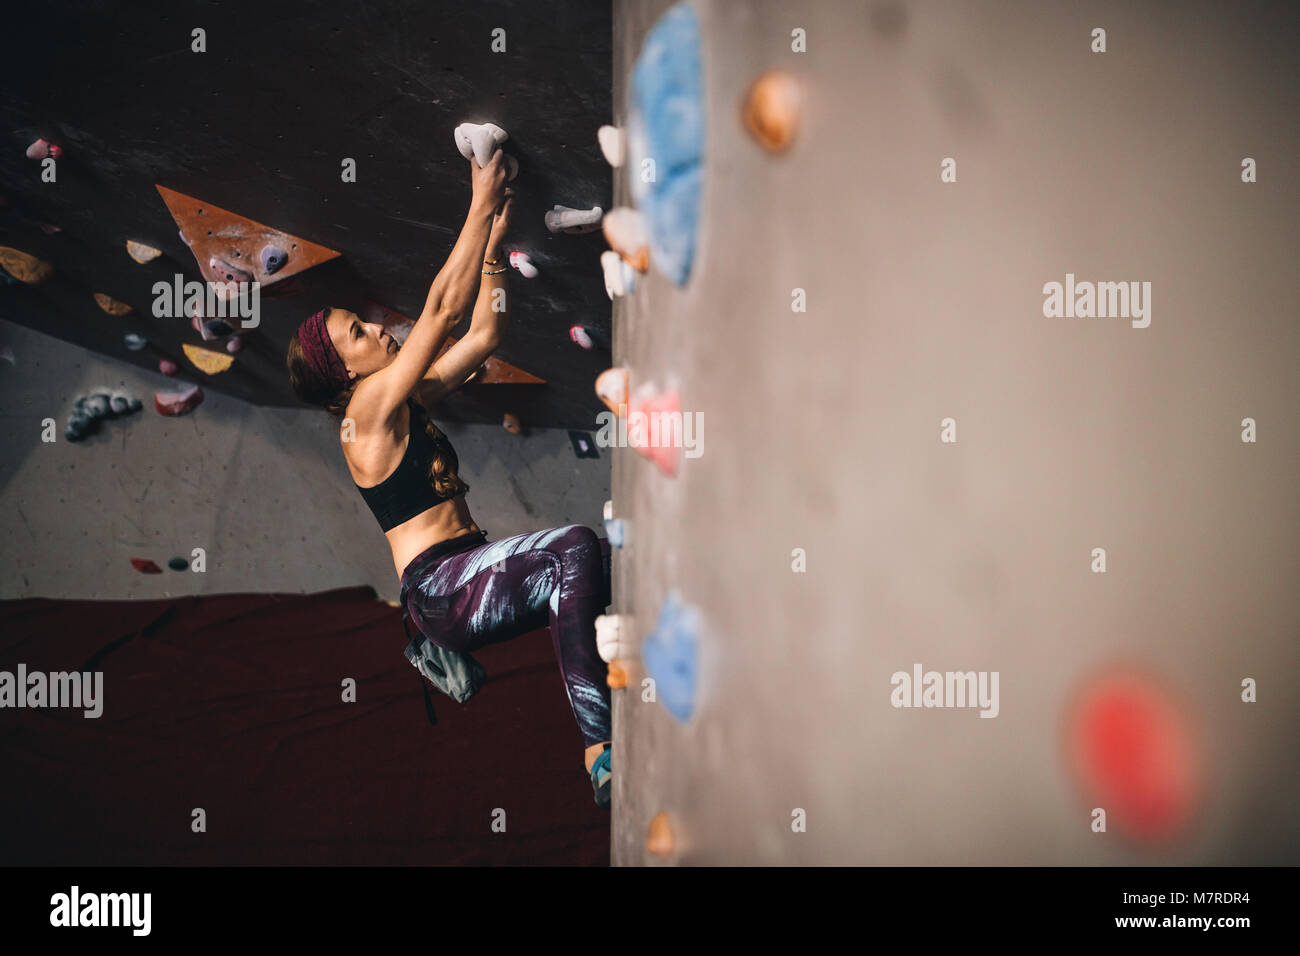 Athletic woman bouldering at an indoor climbing centre. Woman climber holding on the grips while climbing at an - Stock Image